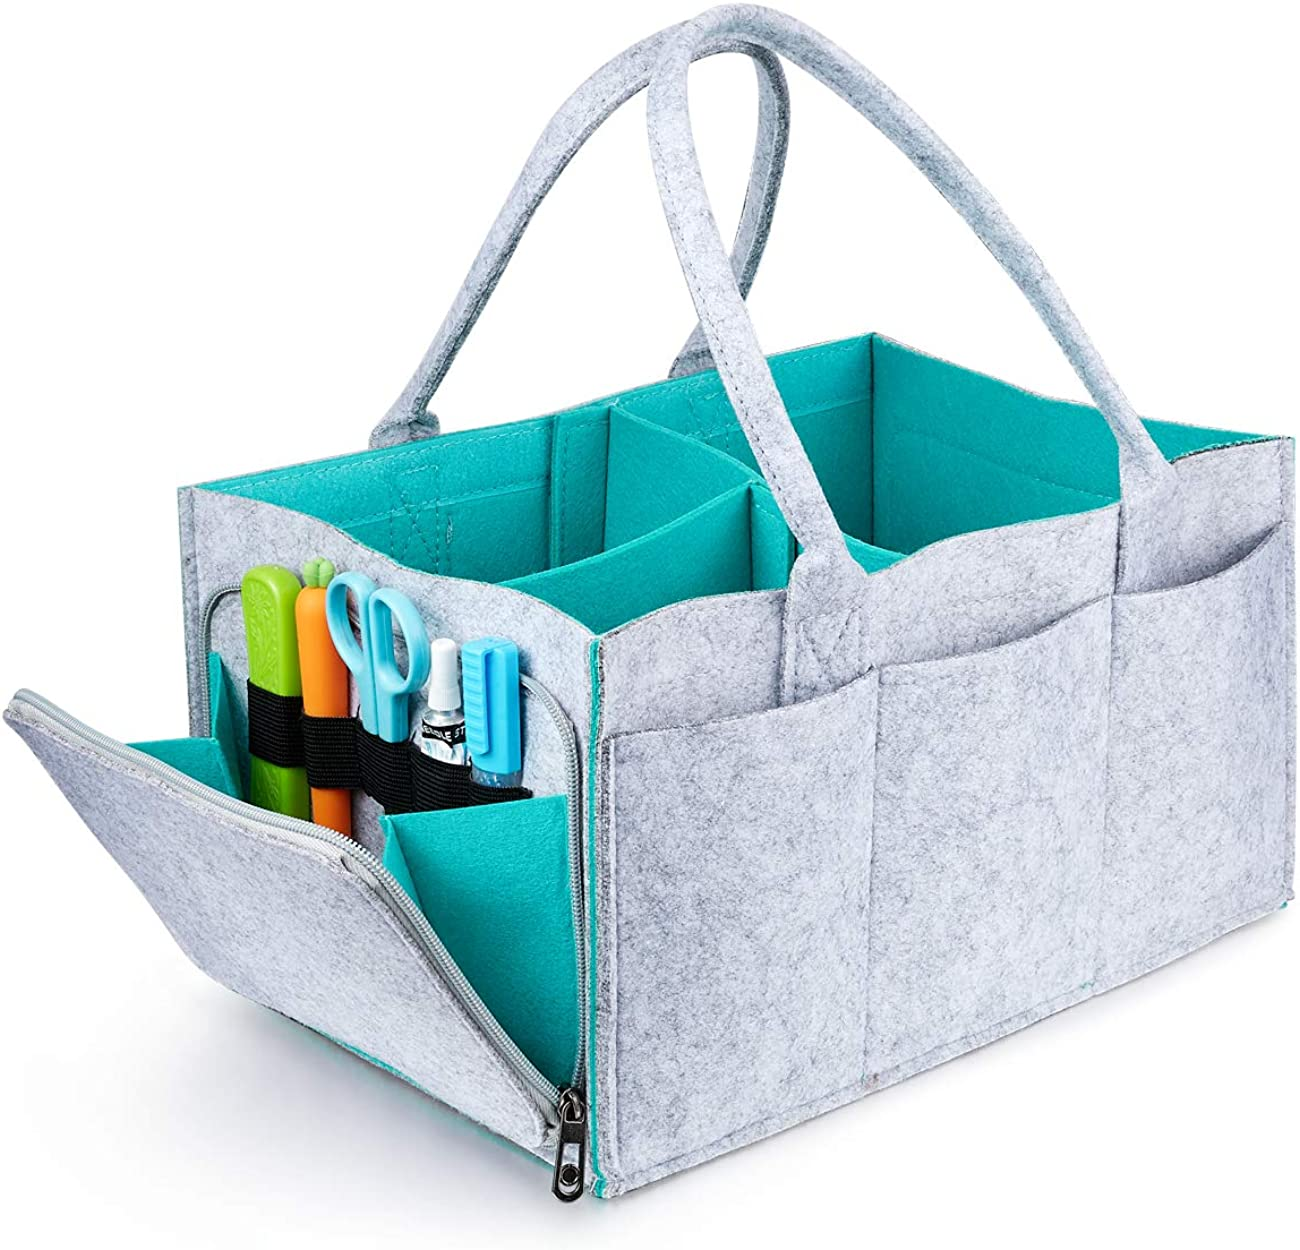 OAKING Baby Diaper Caddy - Nursery Storage Bin and Car Organizer for Diapers and Baby Wipes